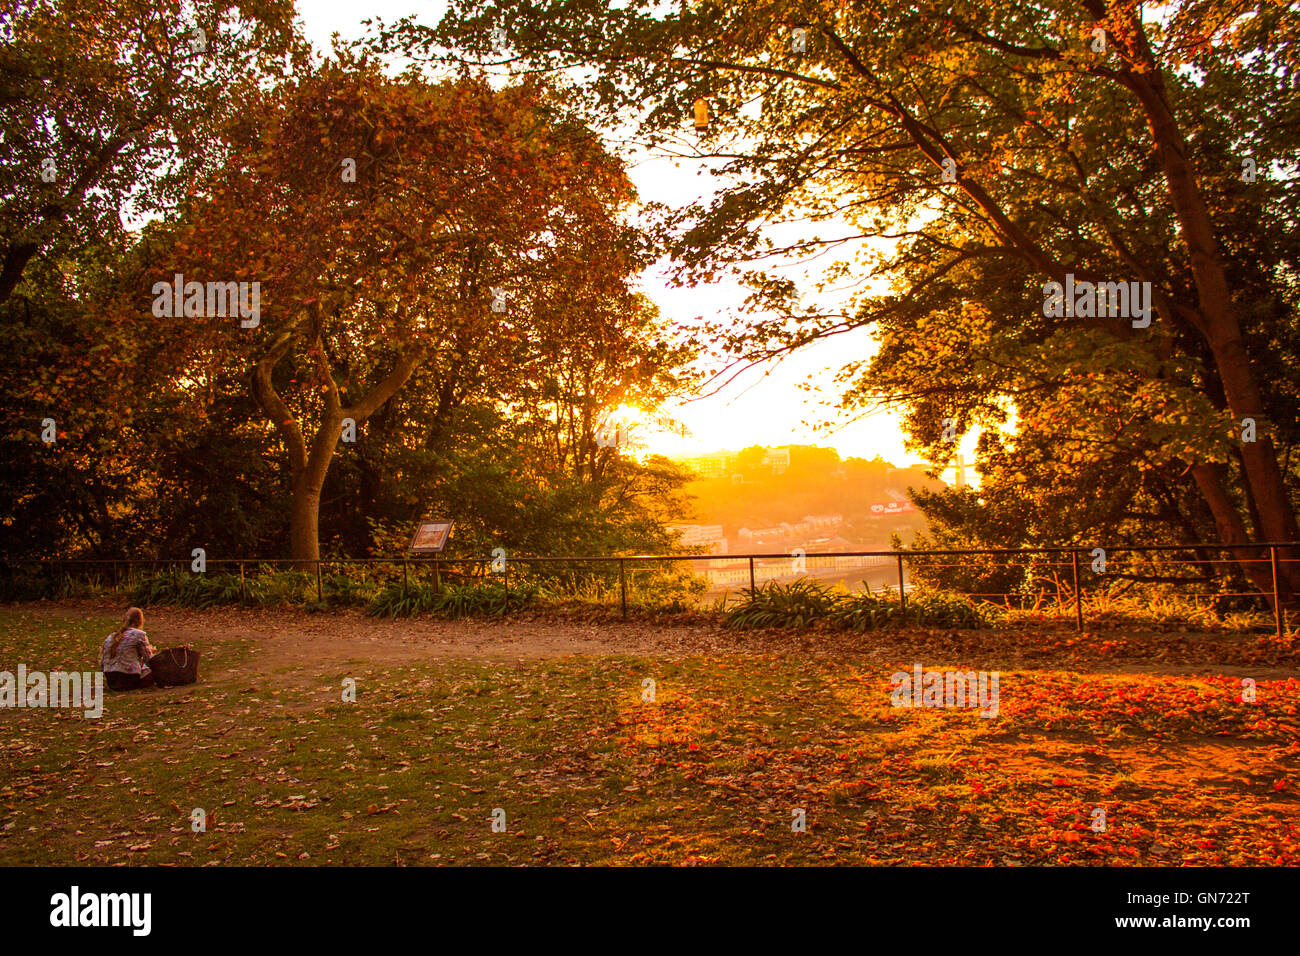 Sunset shot in a public garden in Porto, Portugal. A girl, sited in the grass, enjoys the warm orange and yellow - Stock Image